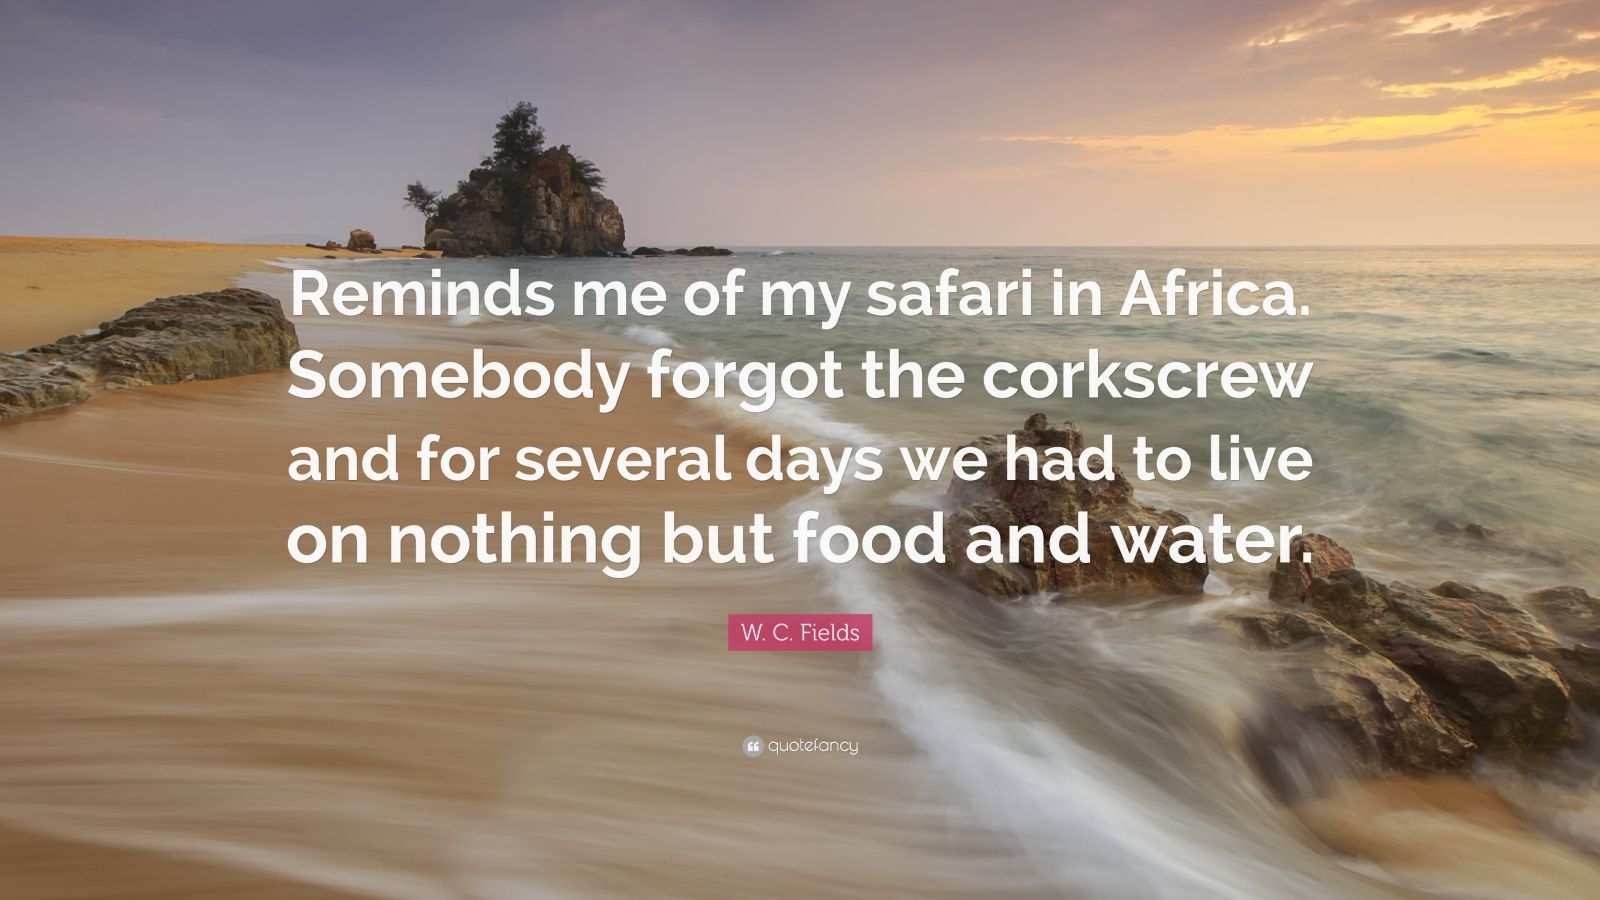 """W. C. Fields Quote: """"Reminds me of my safari in Africa. Somebody forgot the corkscrew and for several days we had to live on nothing but food and water."""""""